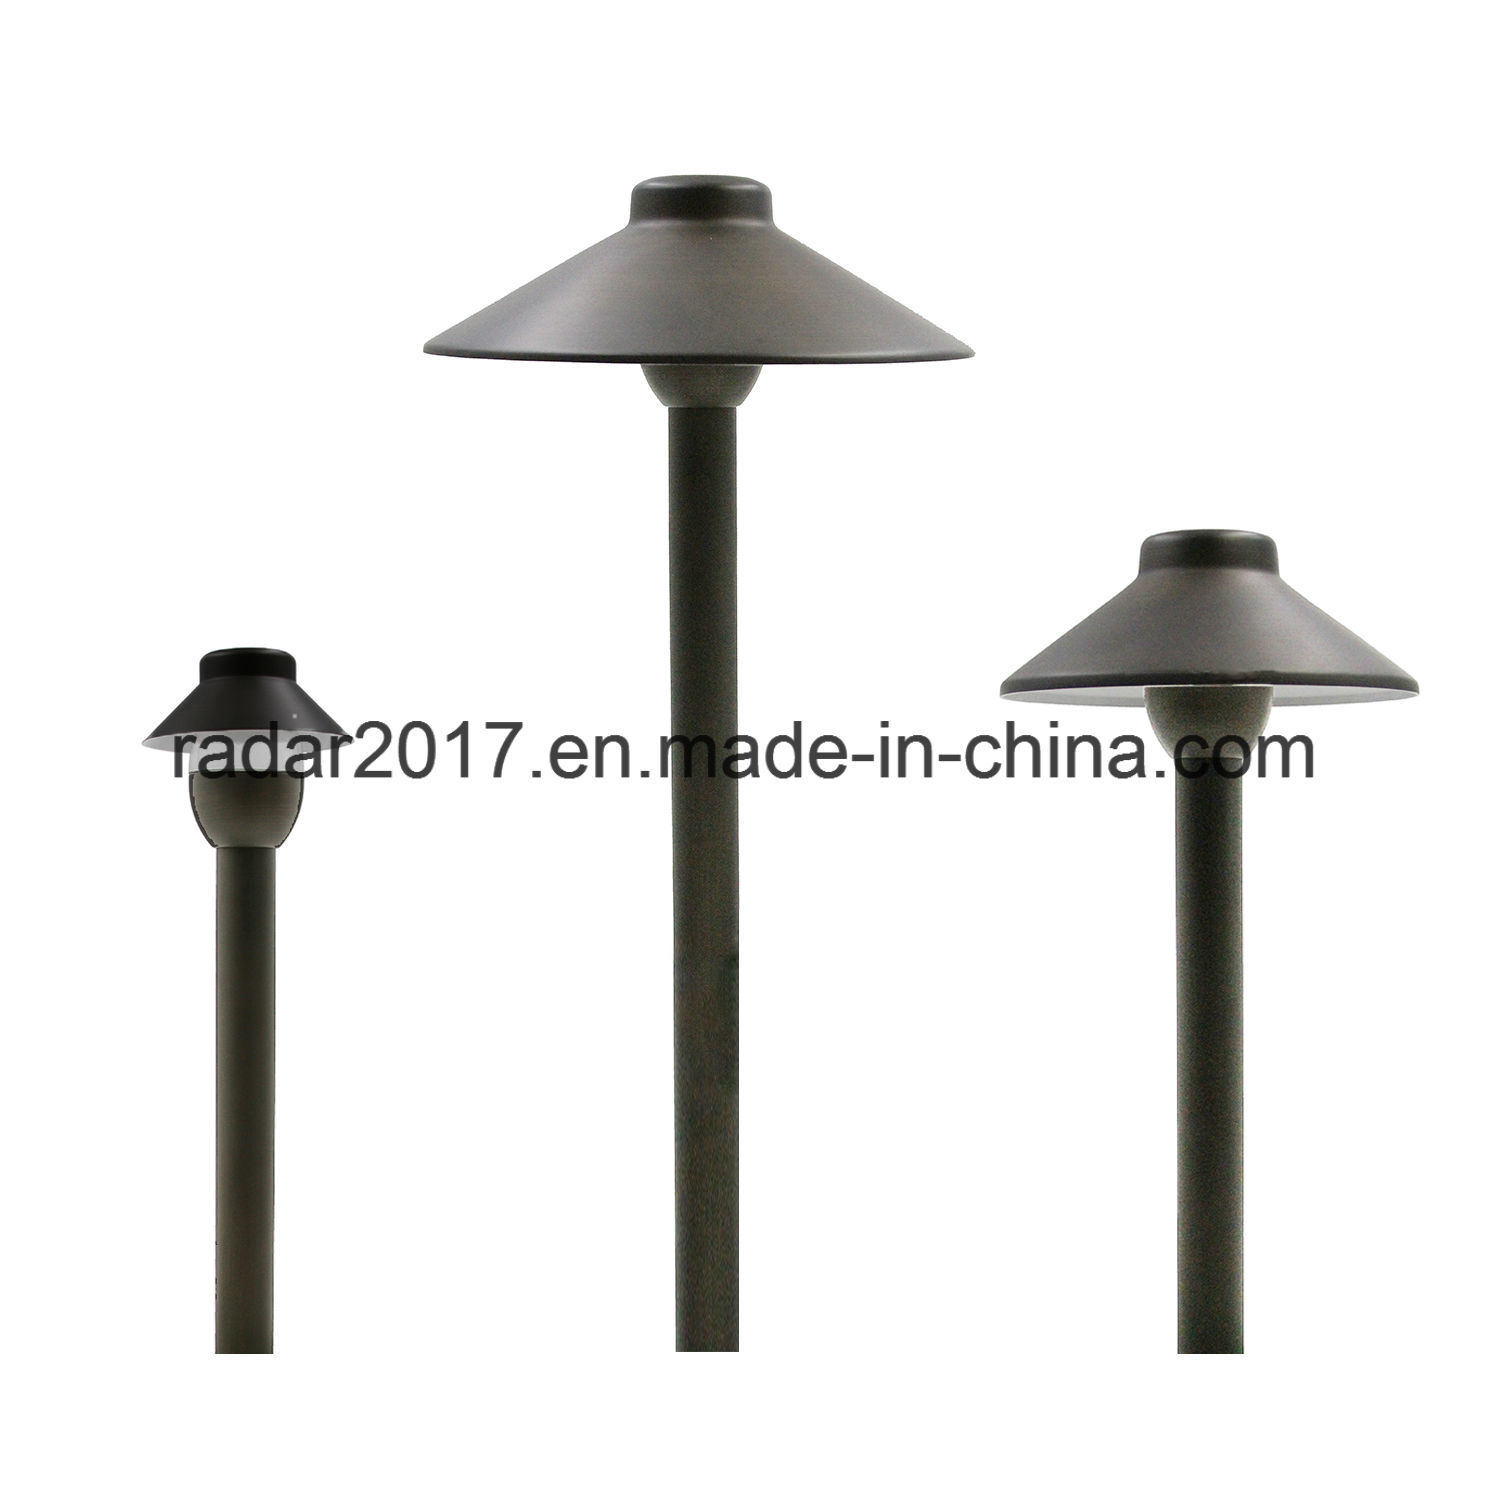 Waterproof Ip65 Pathway Light Fixtures